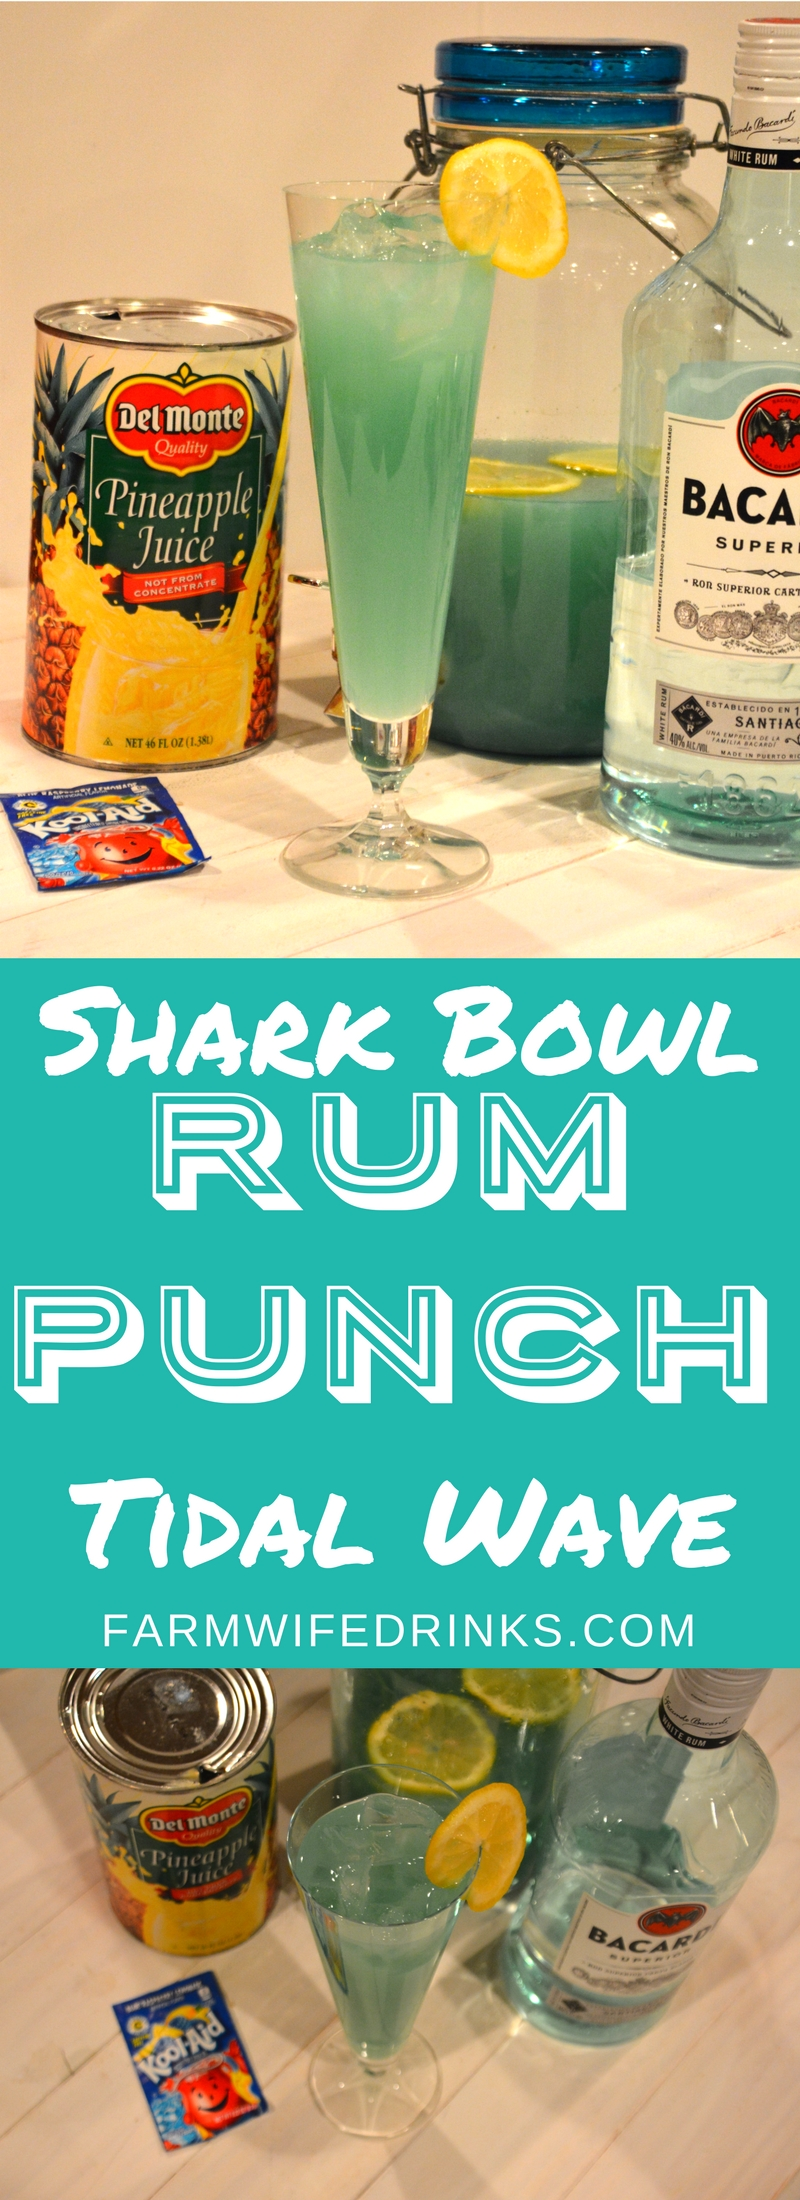 Well, this rum punch - tidal wave or shark bowl punch will bring back memories of sitting around a fishbowl filled with punch and 20 straws.